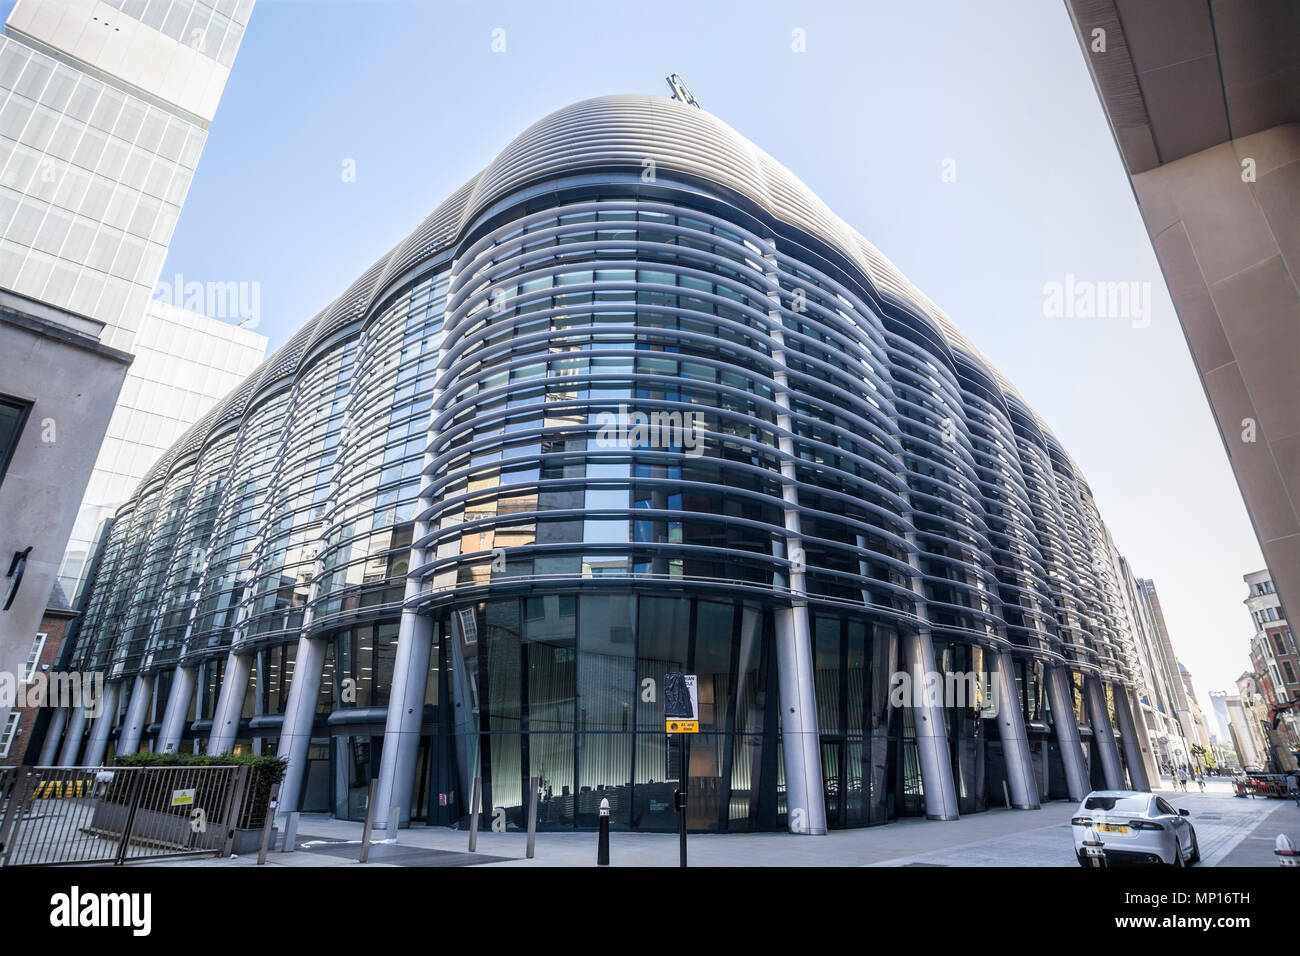 The Walbrook Building in London - Stock Image